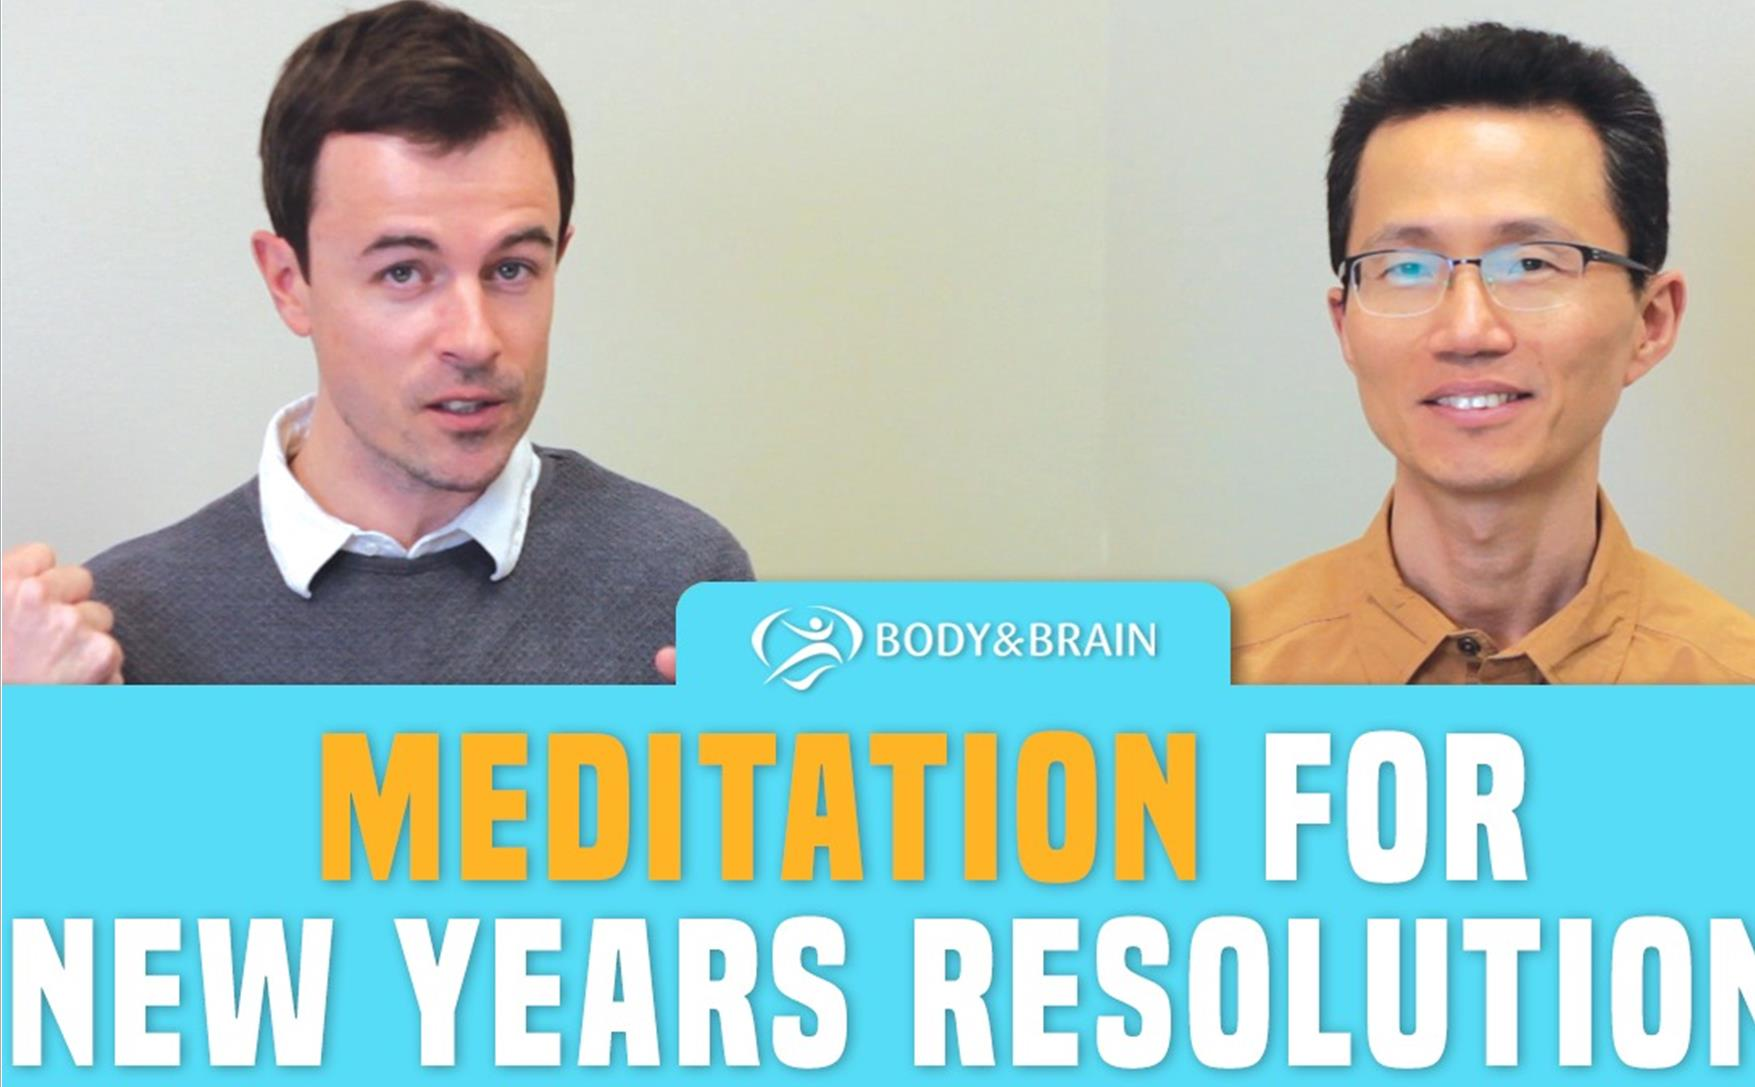 Meditation for New Years Resolutions